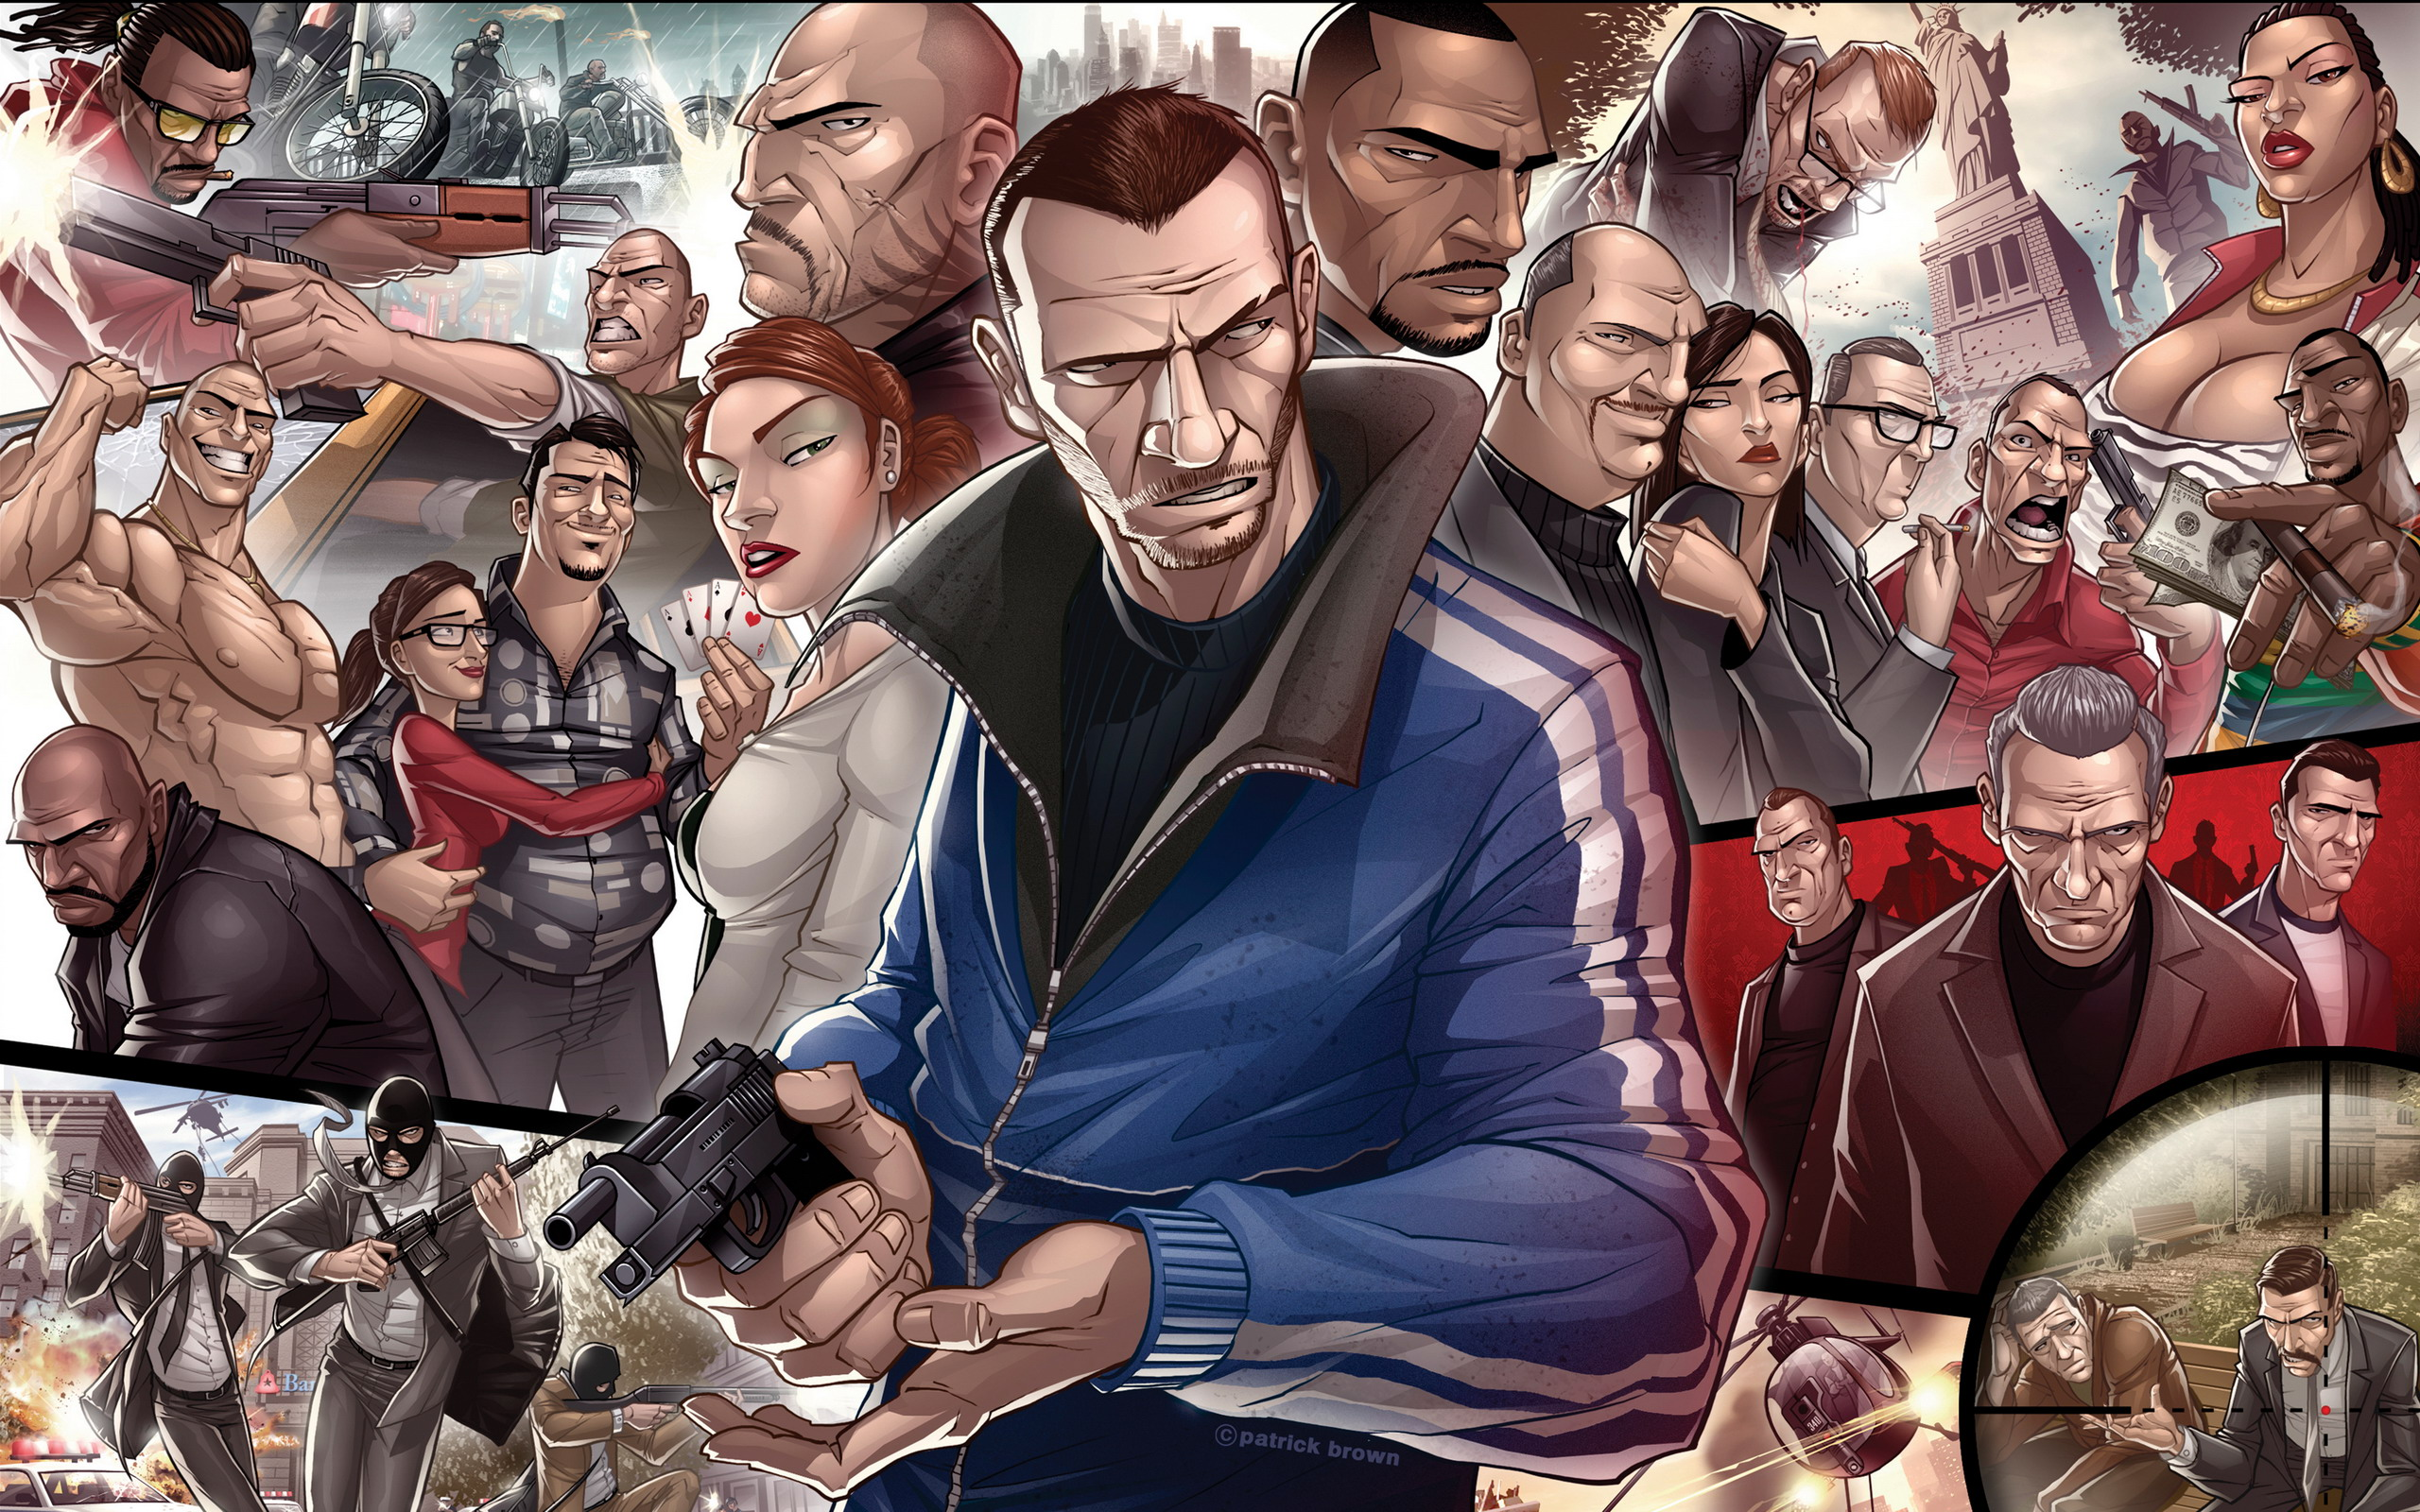 Grand Theft Auto IV Characters 160.01 Kb